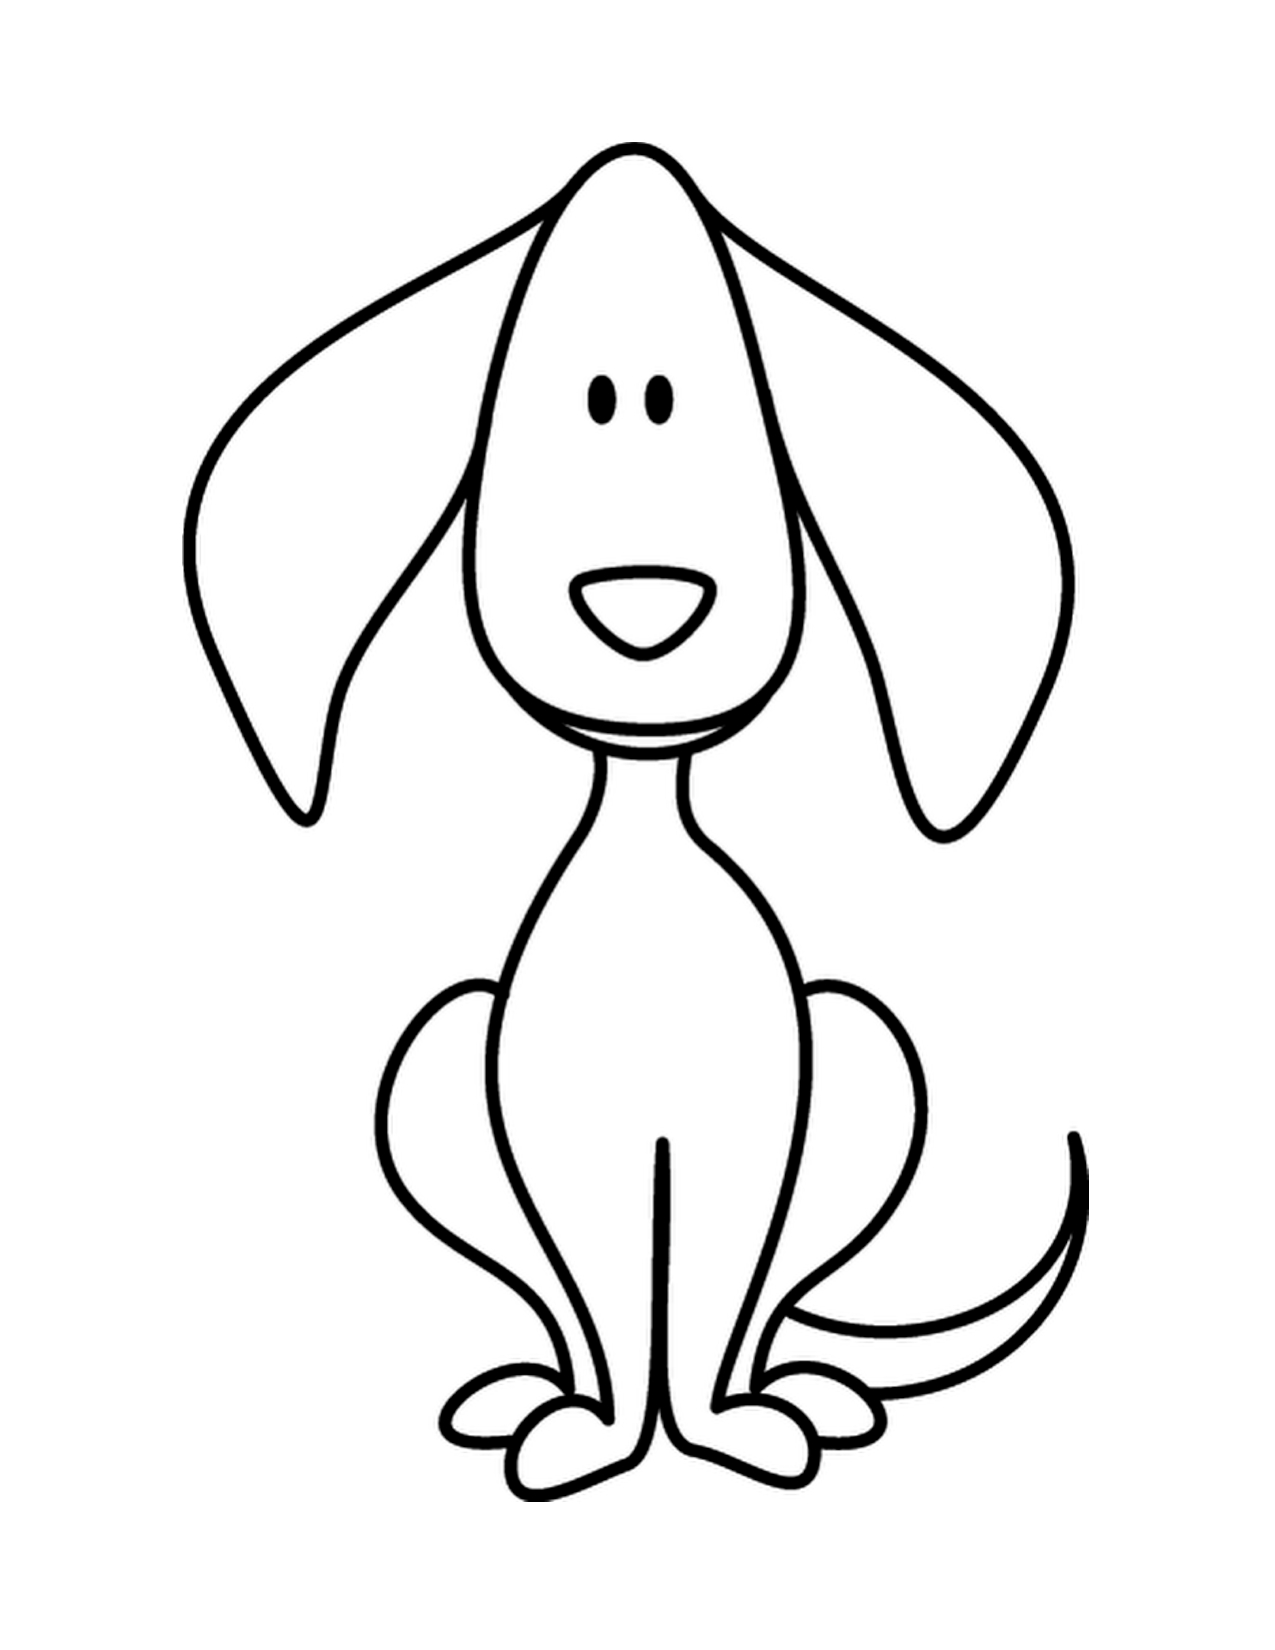 1275x1650 Simple Drawing Of A Dog Dog Drawings In Pencil Easy For Kids